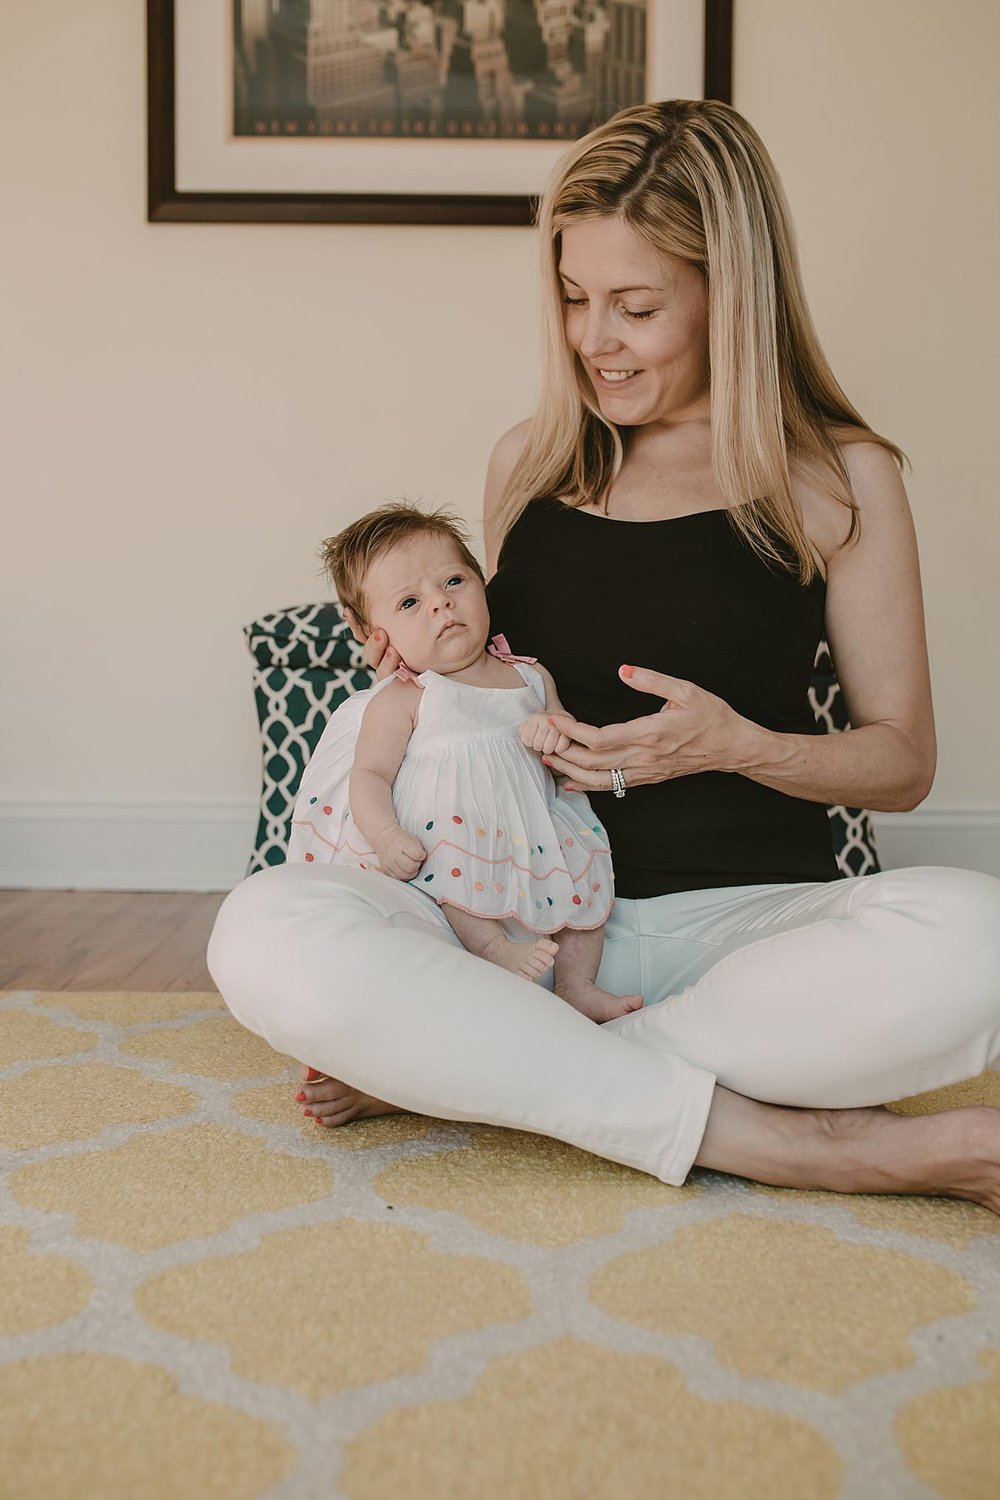 mom and newborn girl sit on yellow and white rug in kids room. images taken during family nyc family lifestyle session by krystil mcdowall photography